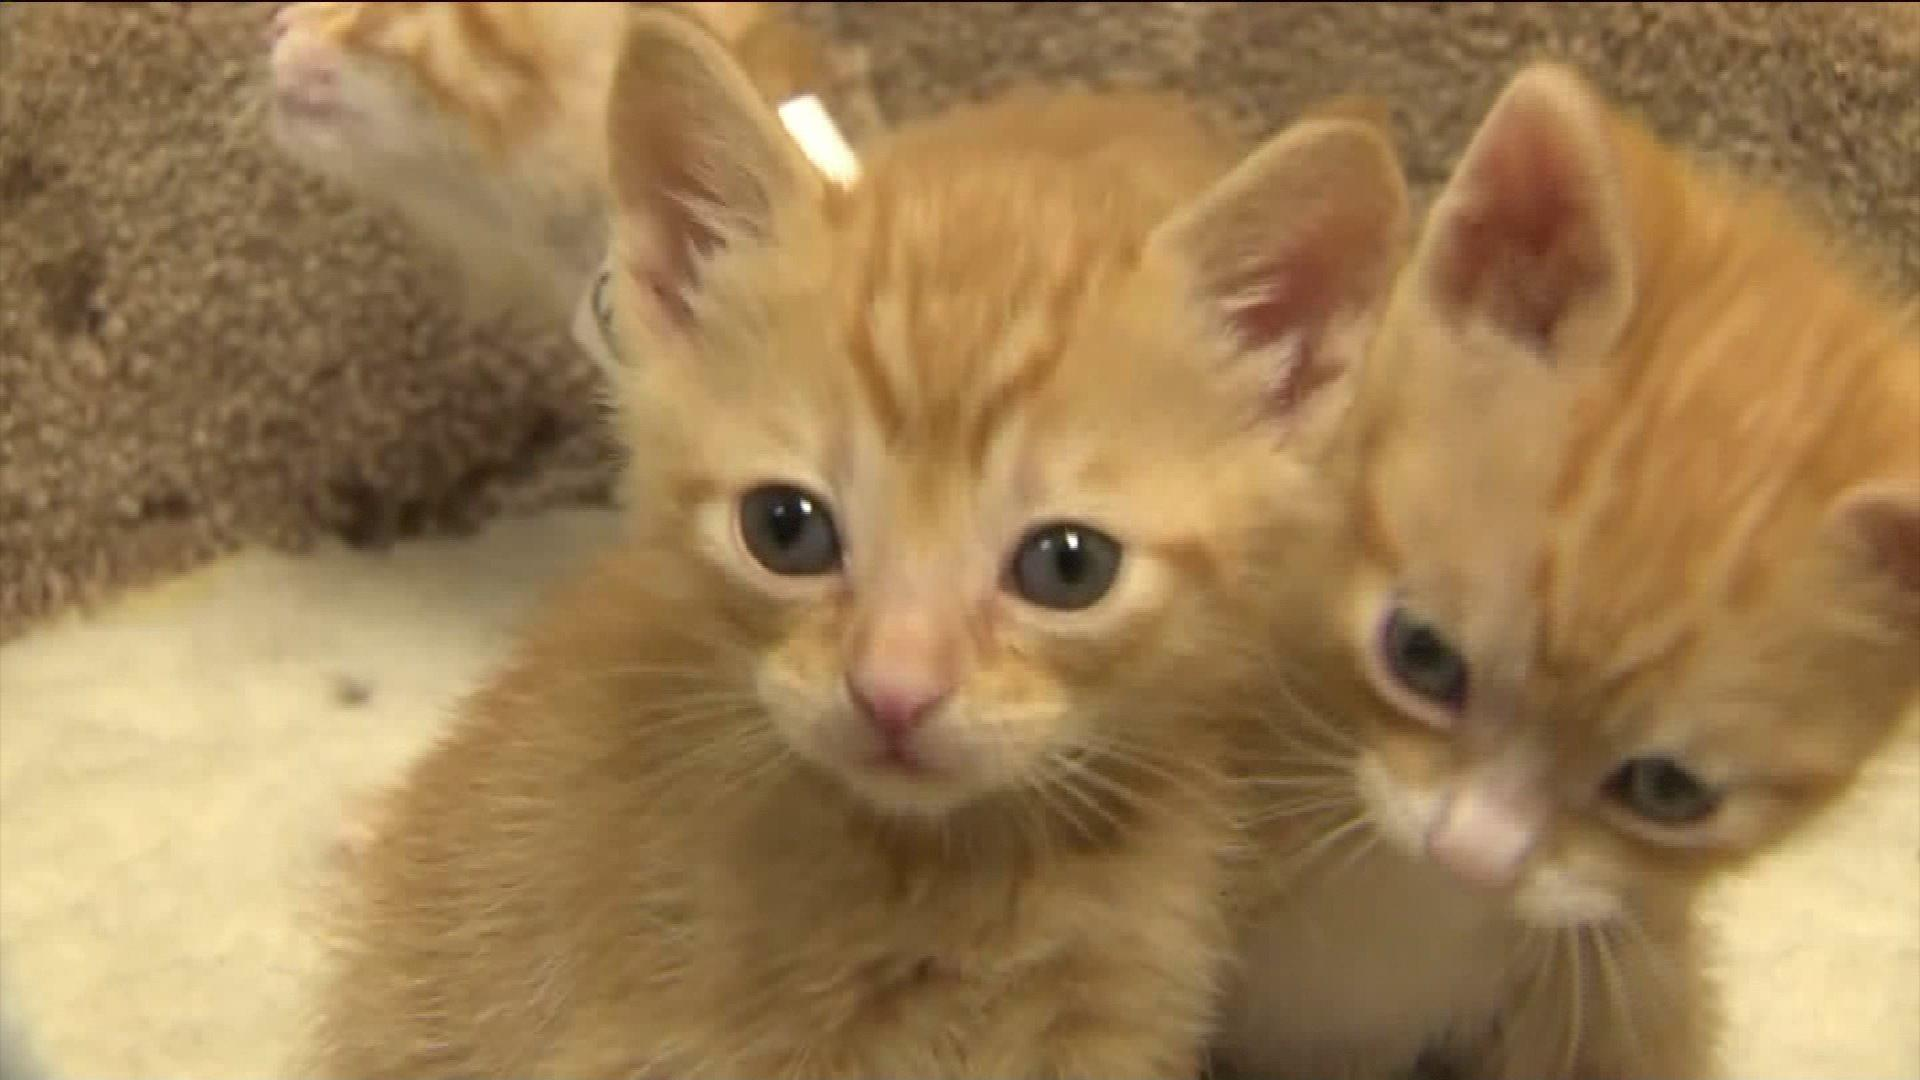 Kittens Found in Plastic Bag Hanging from Tree at California Park